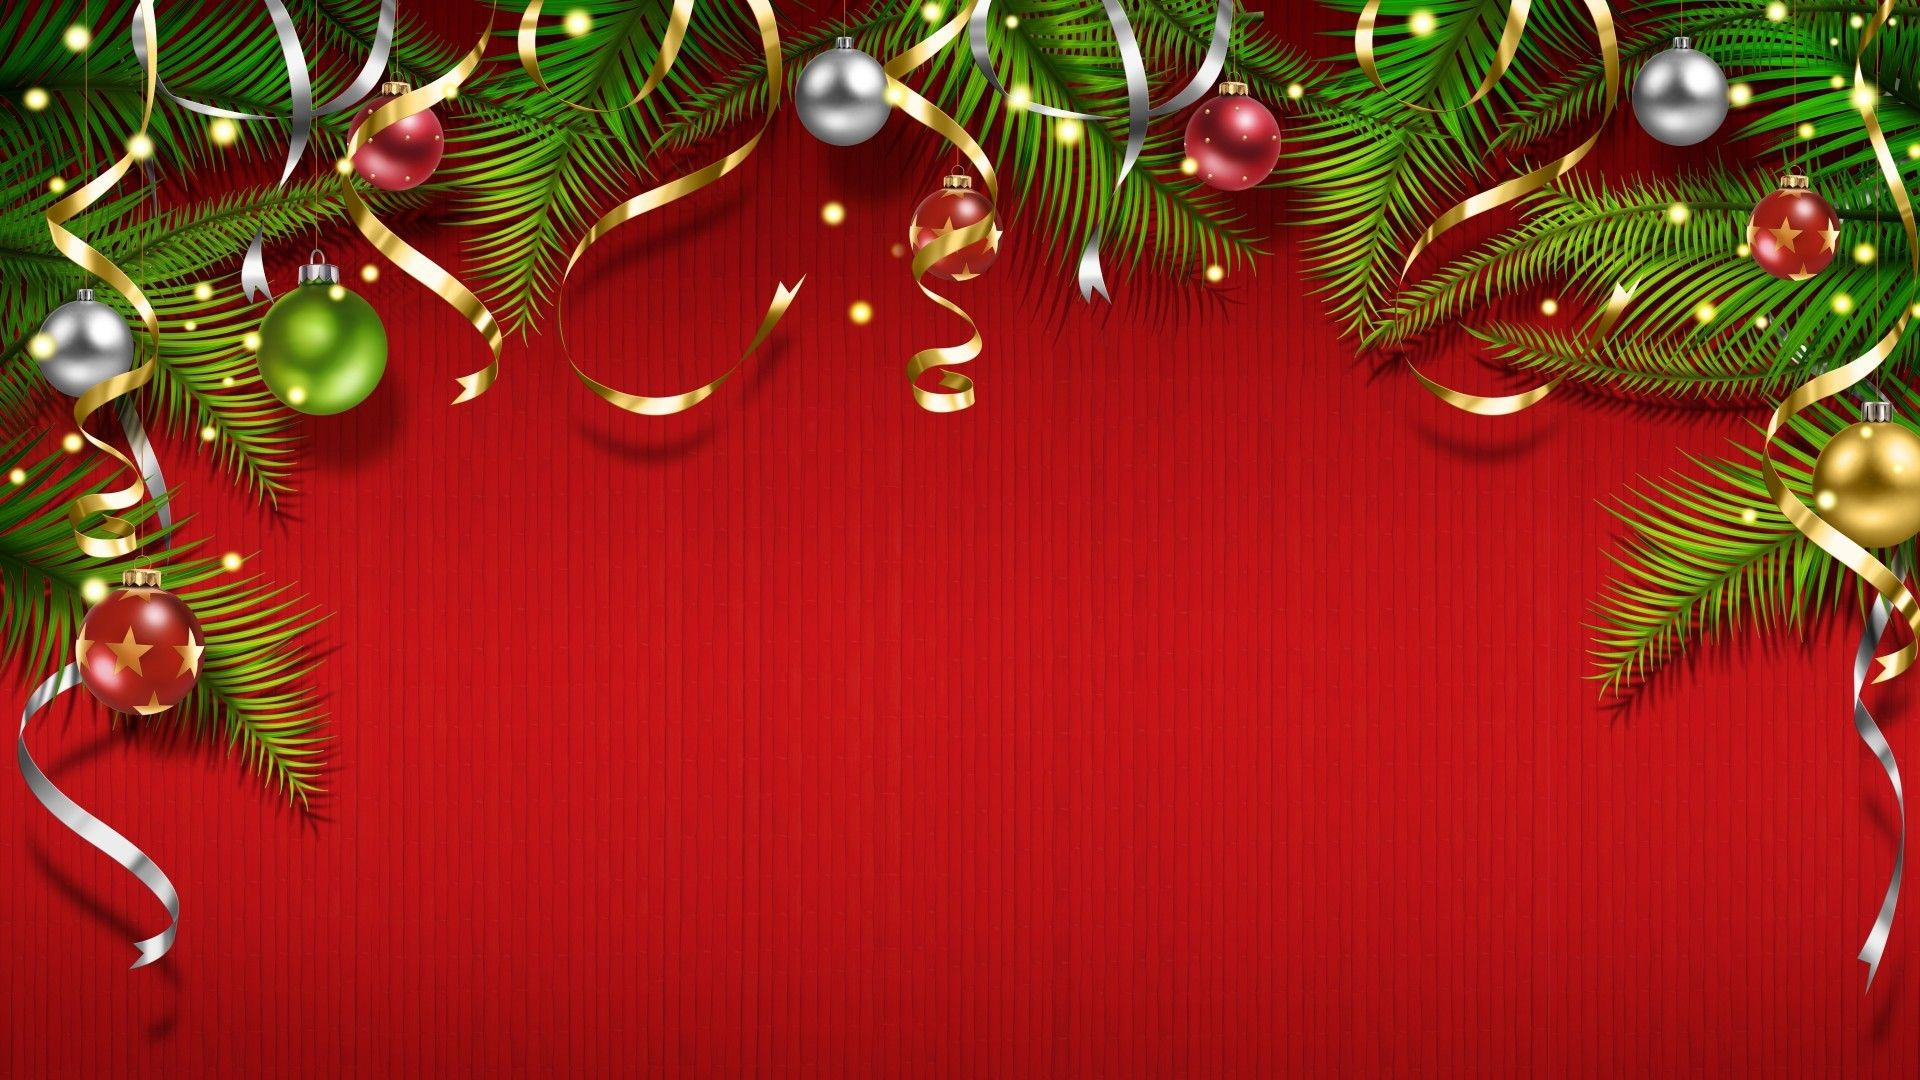 Red Christmas Wallpapers Top Free Red Christmas Backgrounds